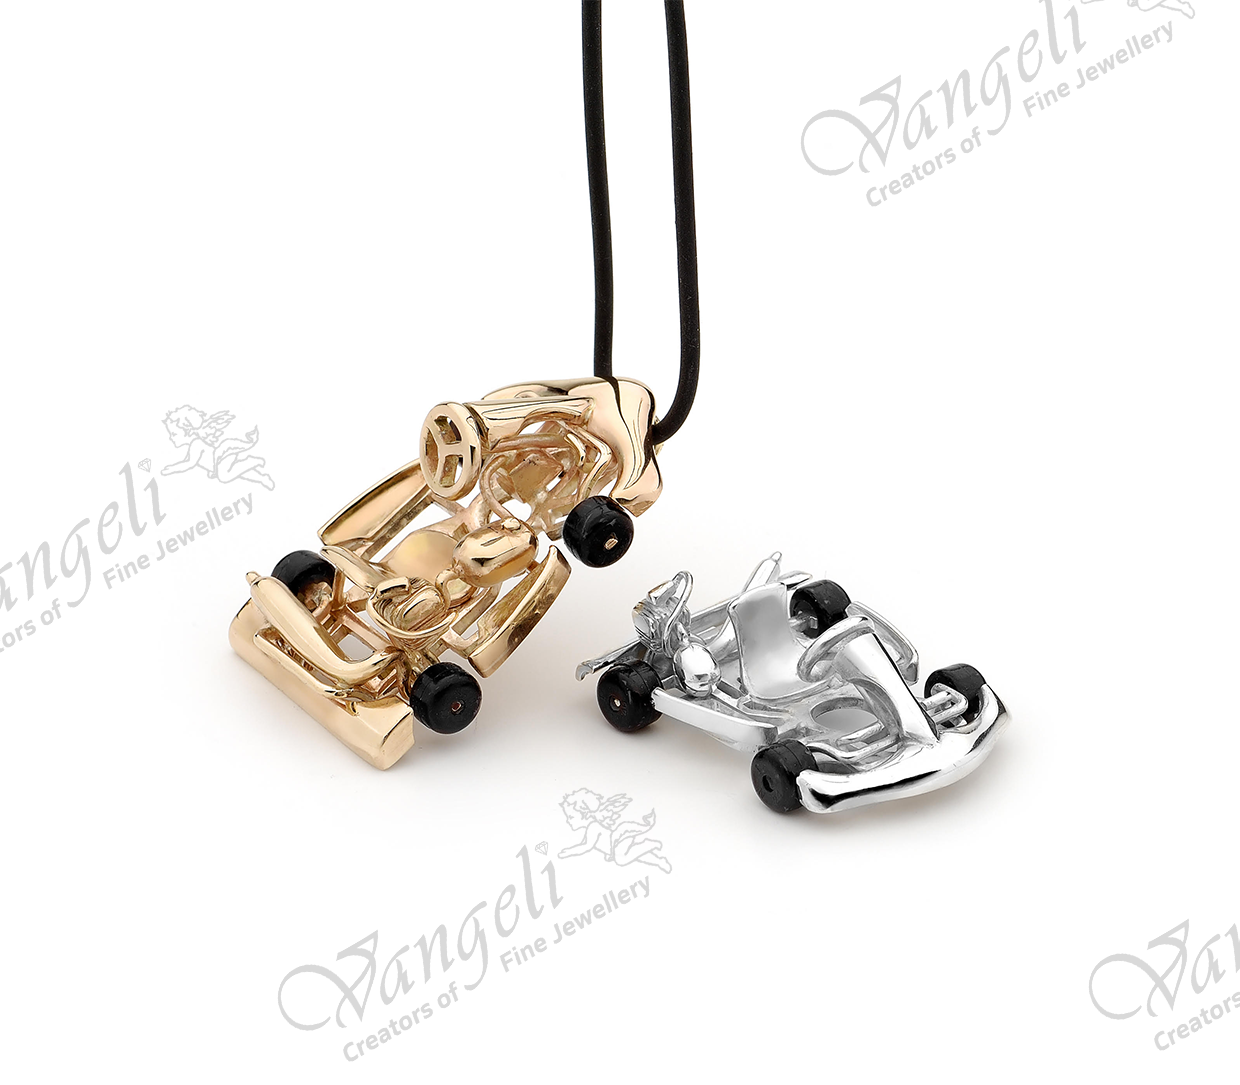 Custom deigned silver and gold go carts